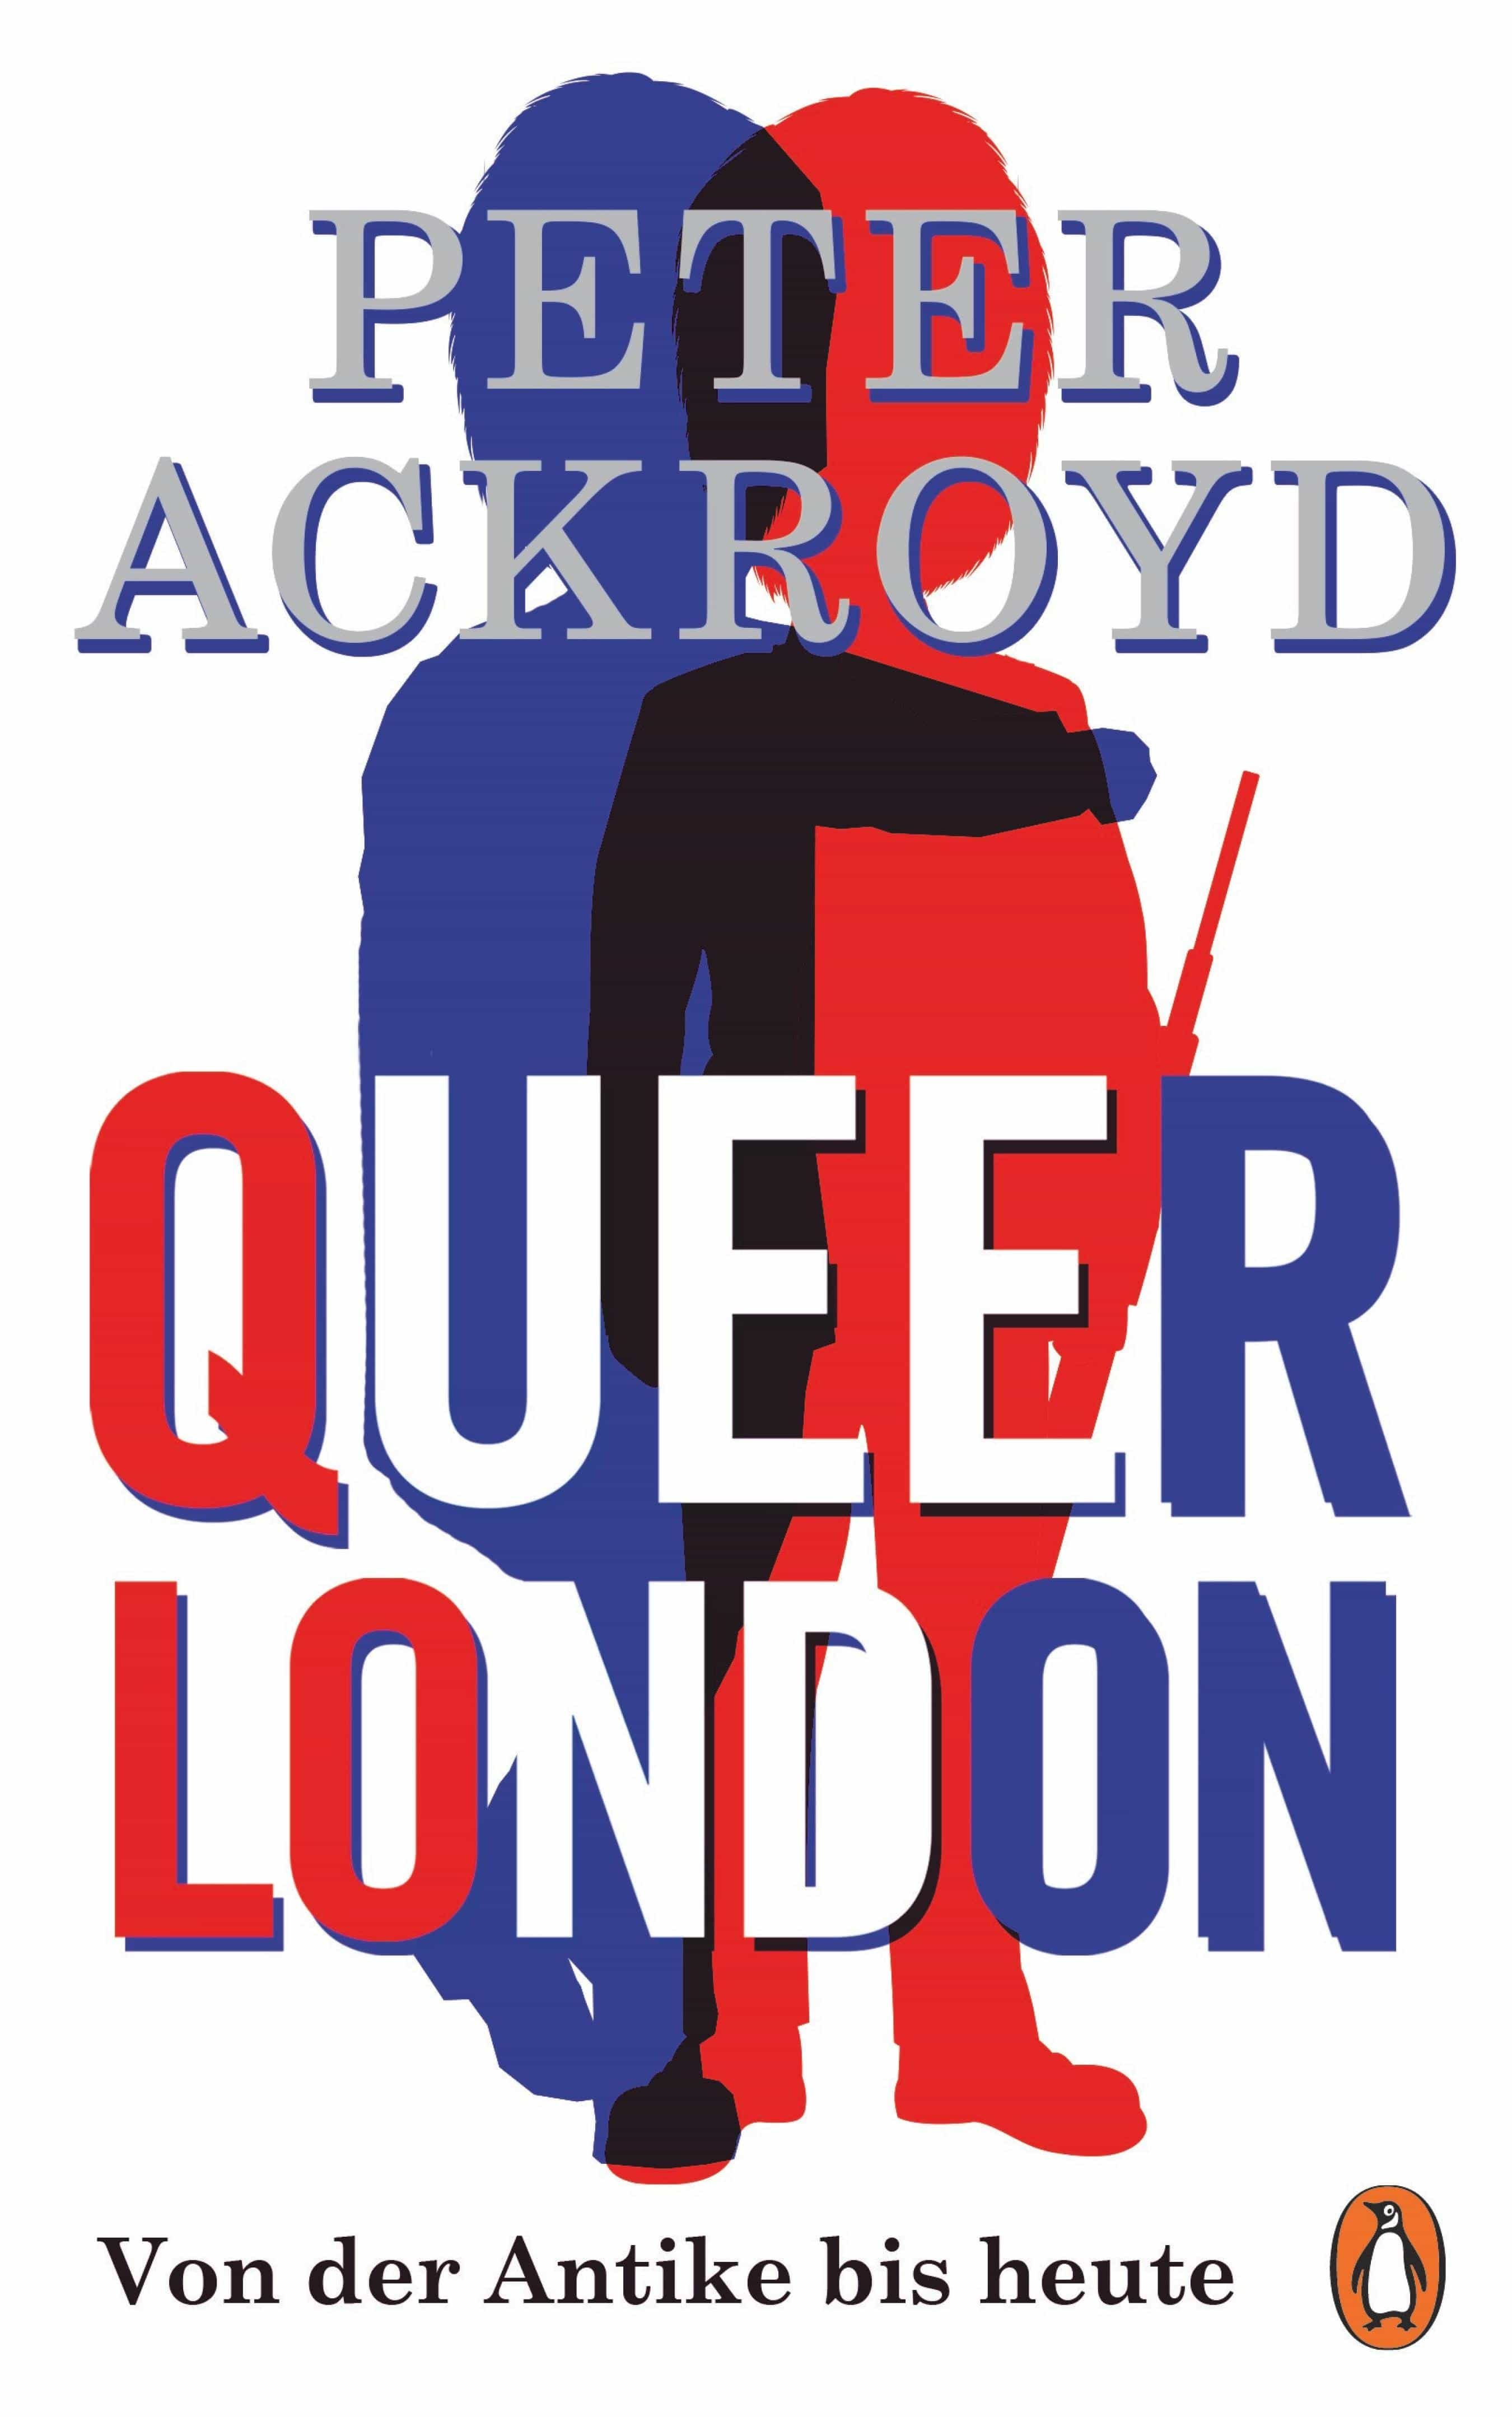 Arte Queer Pdf Queer London Ebook Peter Ackroyd Descargar Libro Pdf O Epub 9783641230845